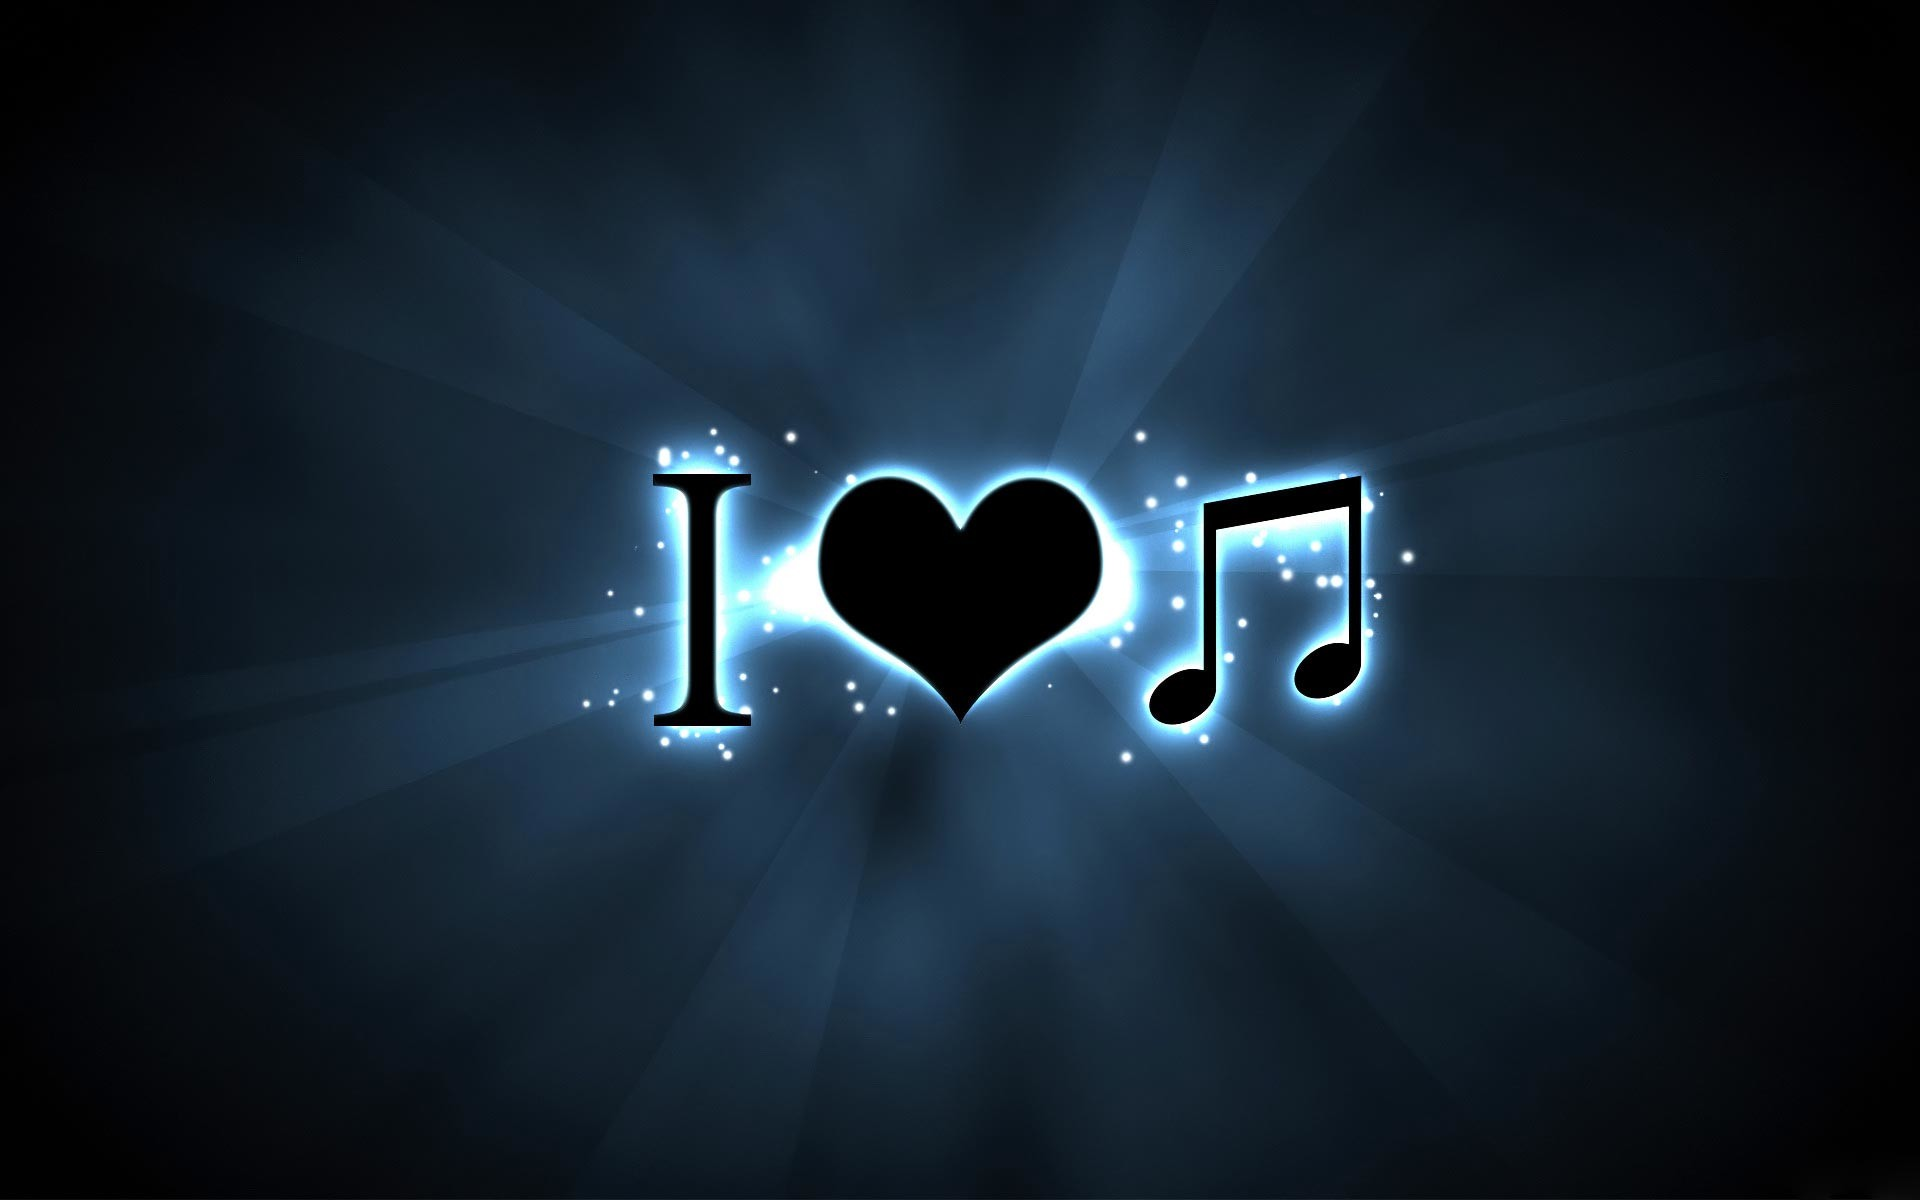 Must see Wallpaper Music Ipad - 607851-beautiful-music-pictures-wallpaper-1920x1200-for-ipad  Trends_451639.jpg